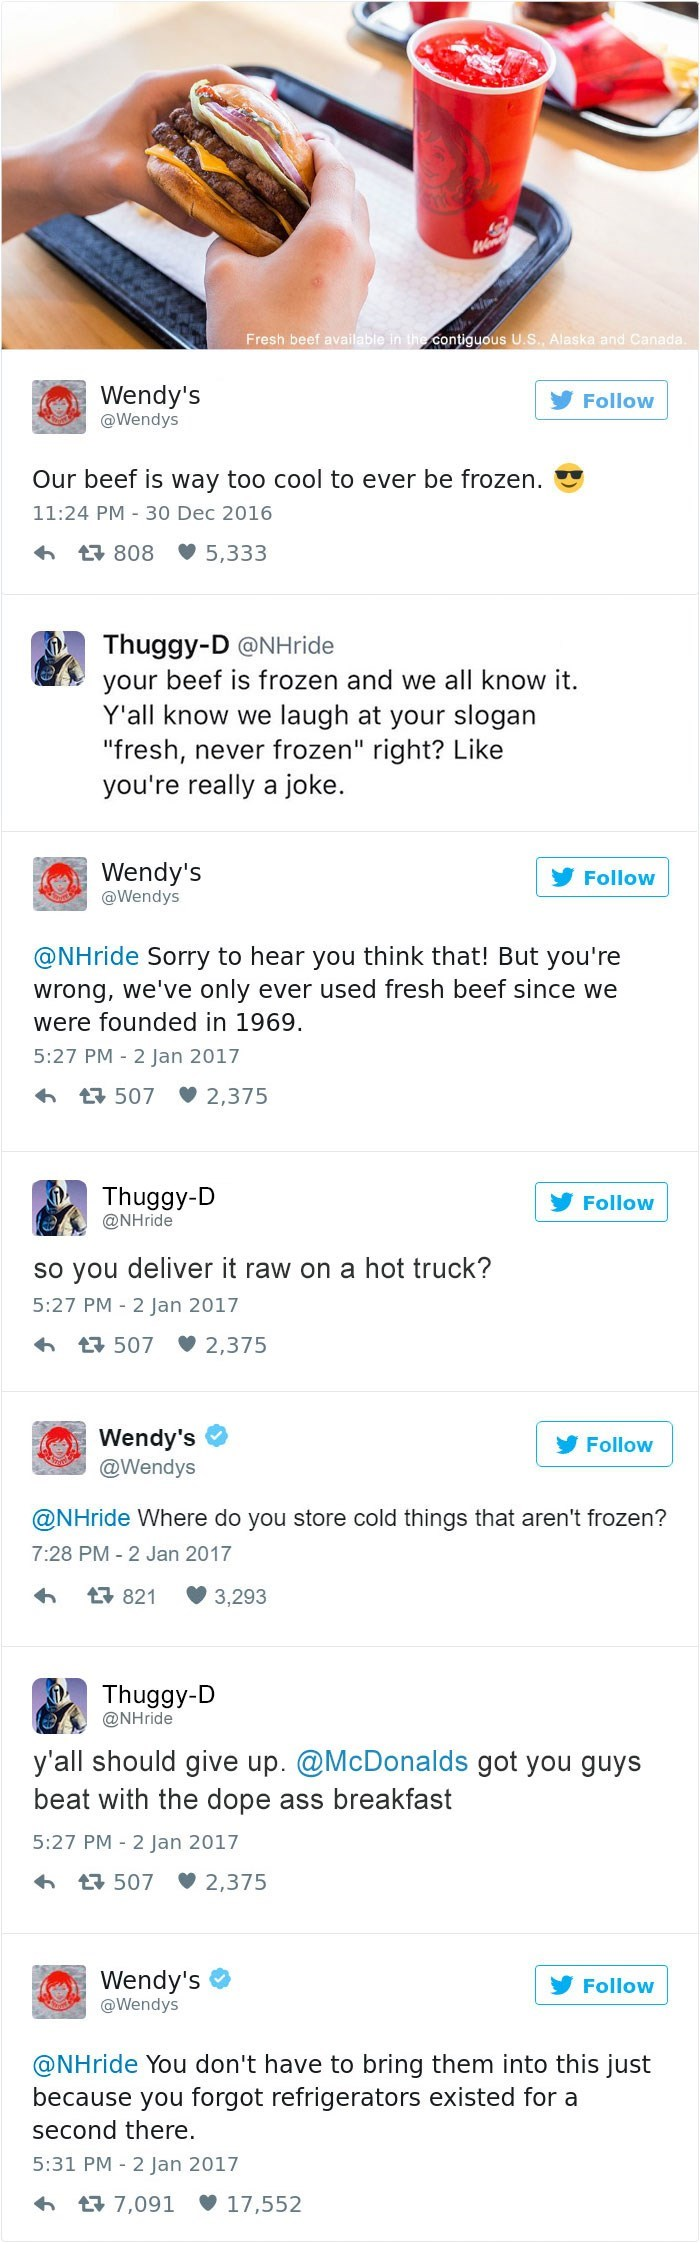 "Text - We Fresh beef available in the contiguous U.S., Alaska and Canada Wendy's Follow @Wendys Our beef is way too cool to ever be frozen. 11:24 PM 30 Dec 2016 t 808 5,333 Thuggy-D @NHride your beef is frozen and we all know it. Y'all know we laugh at your slogan ""fresh, never frozen"" right?? Like you're really a joke. Wendy's @Wendys Follow @NHride Sorry to hear you think that! But you're wrong, we've only ever used fresh beef since we were founded in 1969. 5:27 PM -2 Jan 2017 2,375 507 Thuggy"